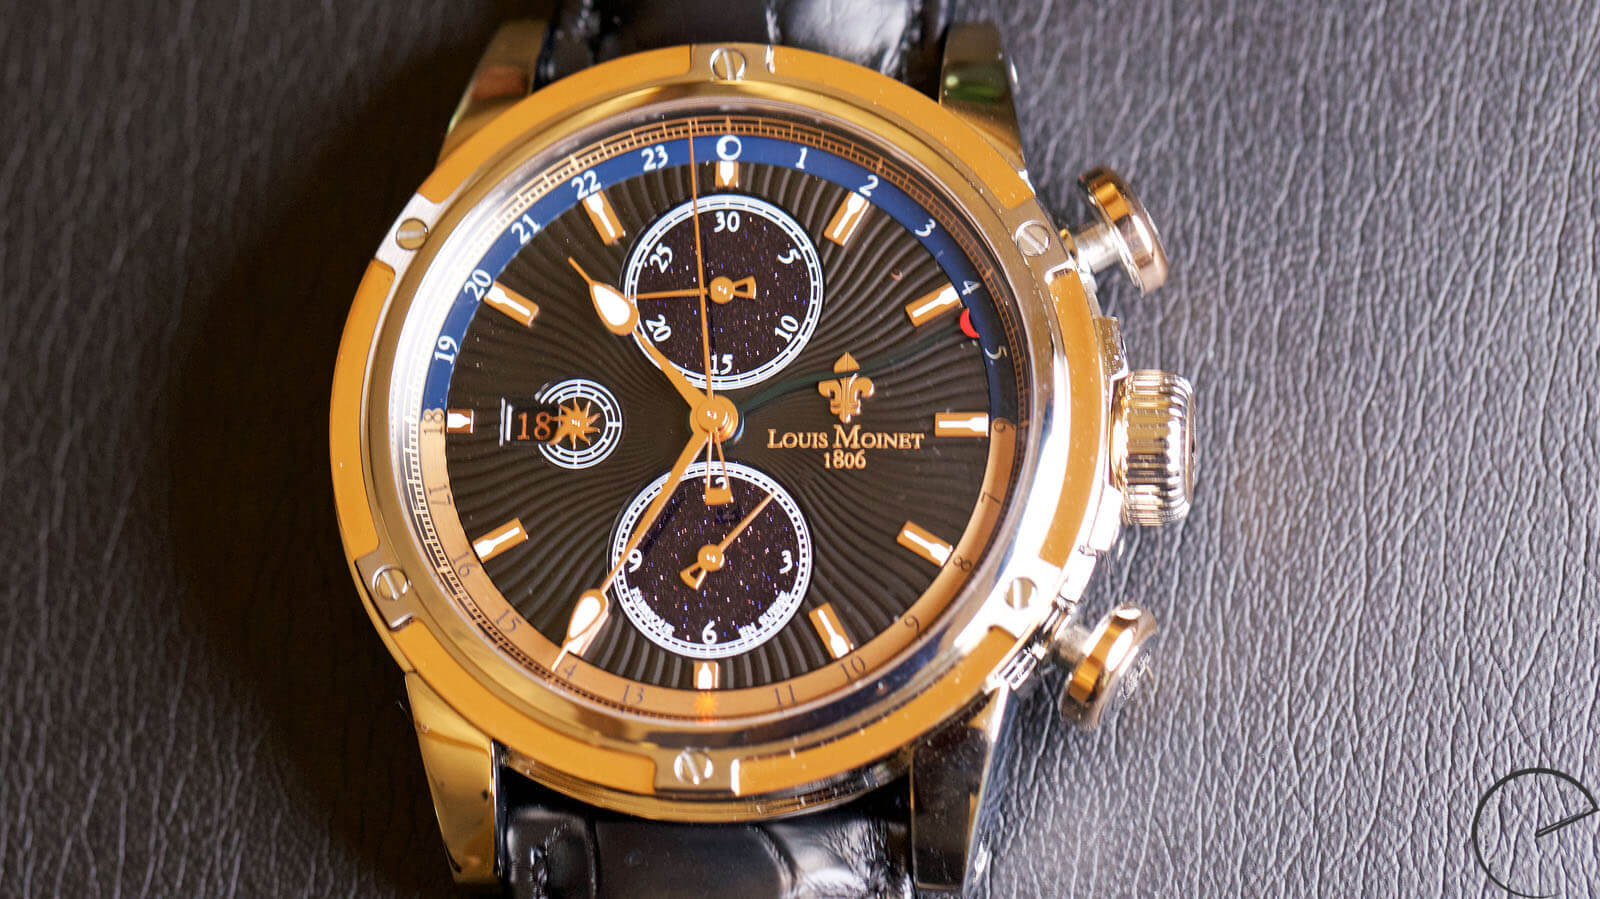 Image of Louis Moinet Geograph